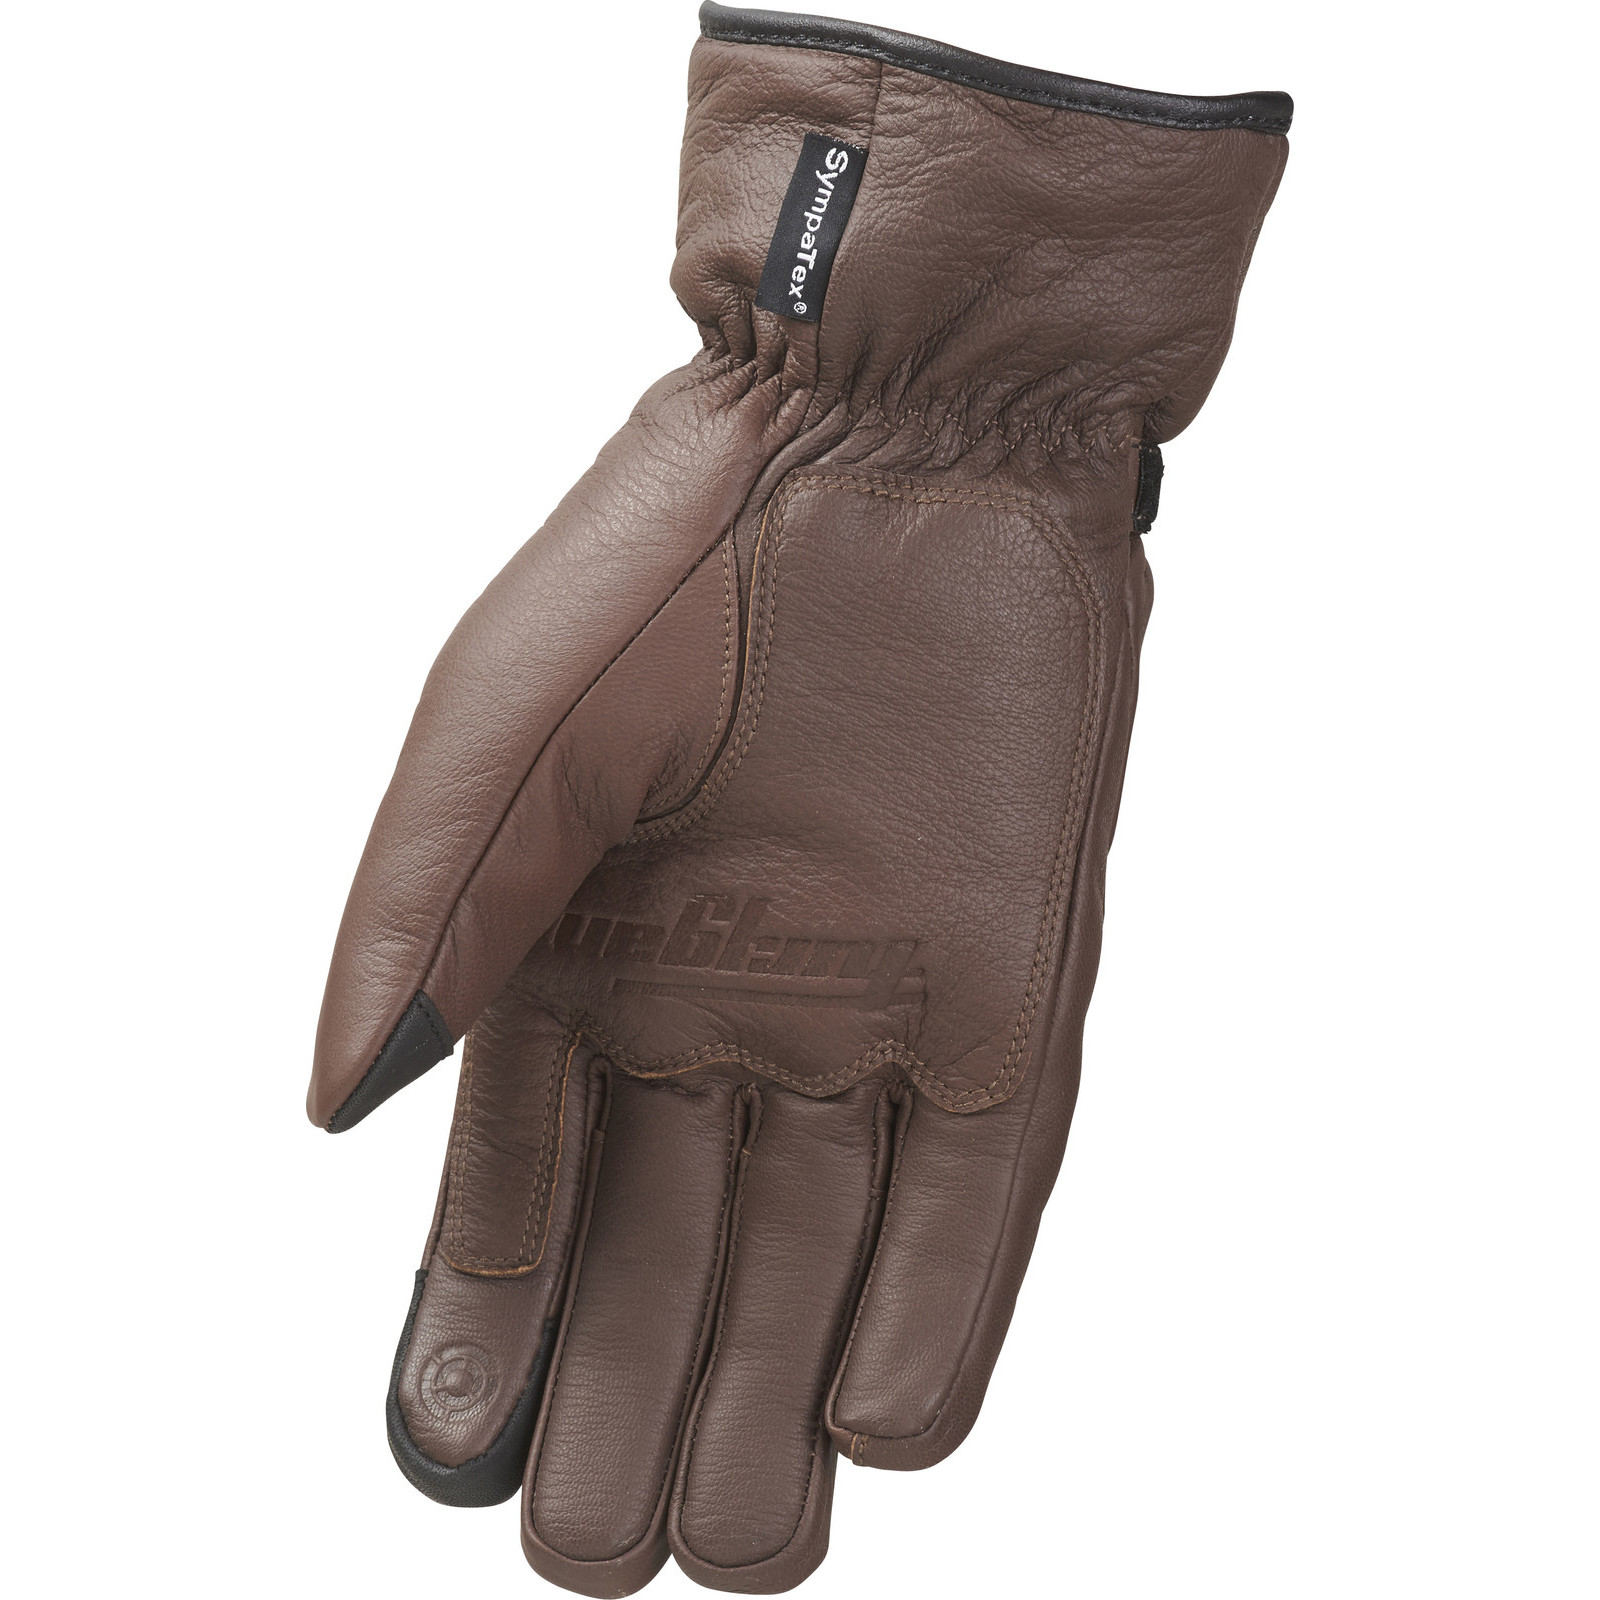 Mens leather gloves thinsulate - Furygan Shiver Evo Sympatex Motorcycle Gloves Leather Waterproof Thinsulate Mens